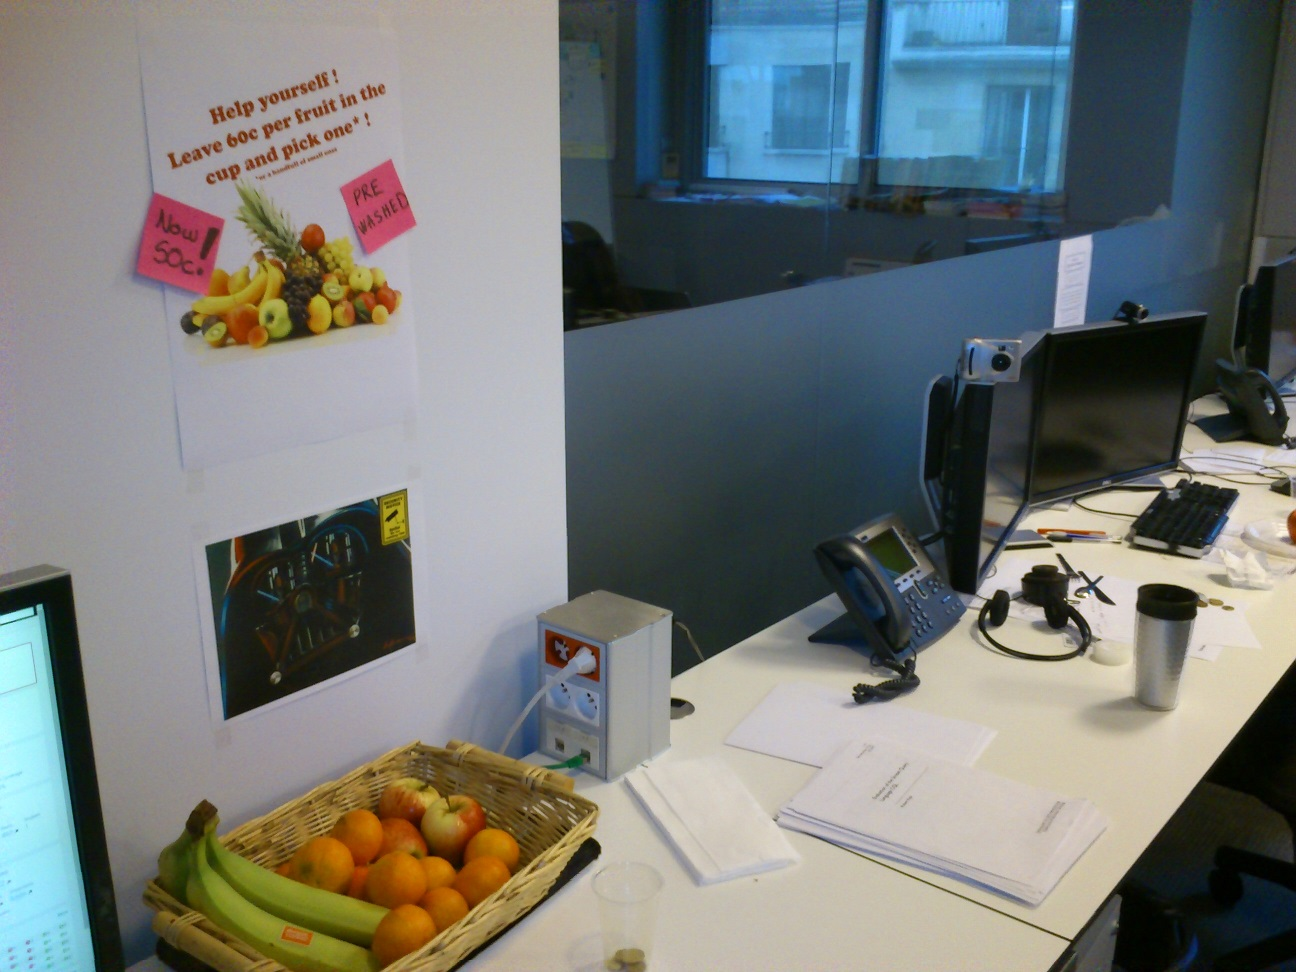 Our fruit basket at my desk